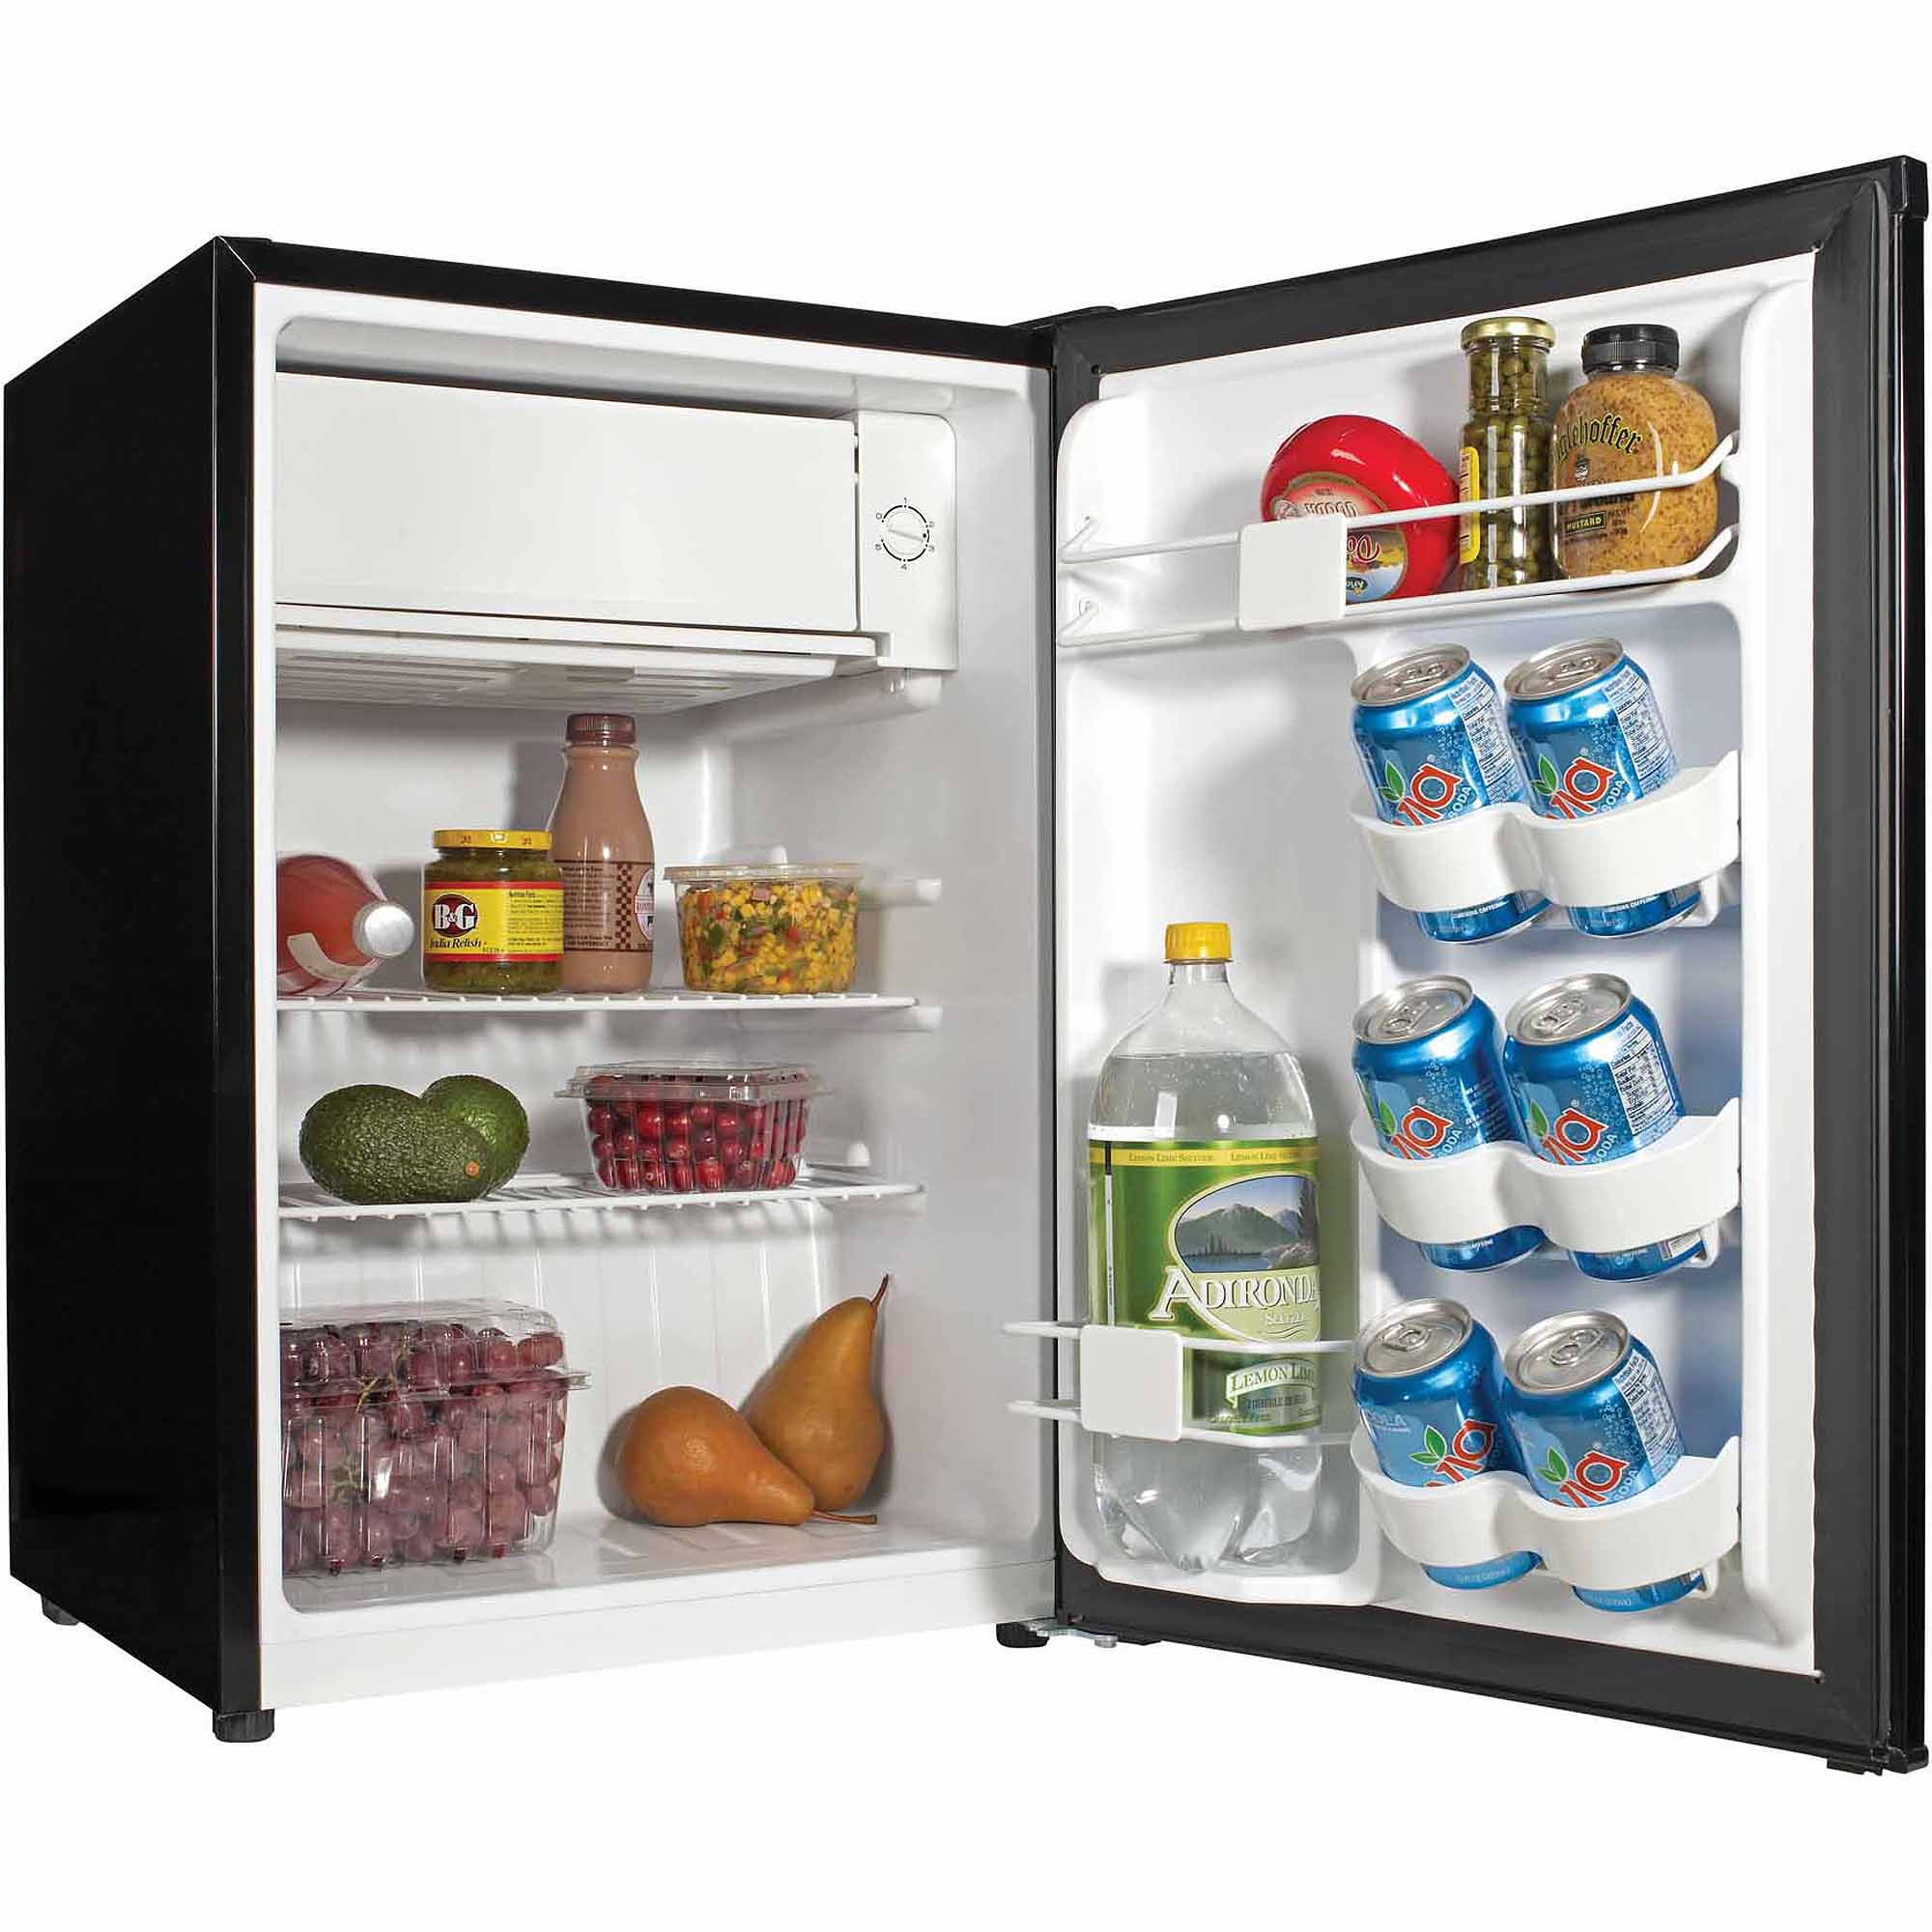 Haier 2.7 Cu Ft Refrigerator Image 3 Of 5 Part 73